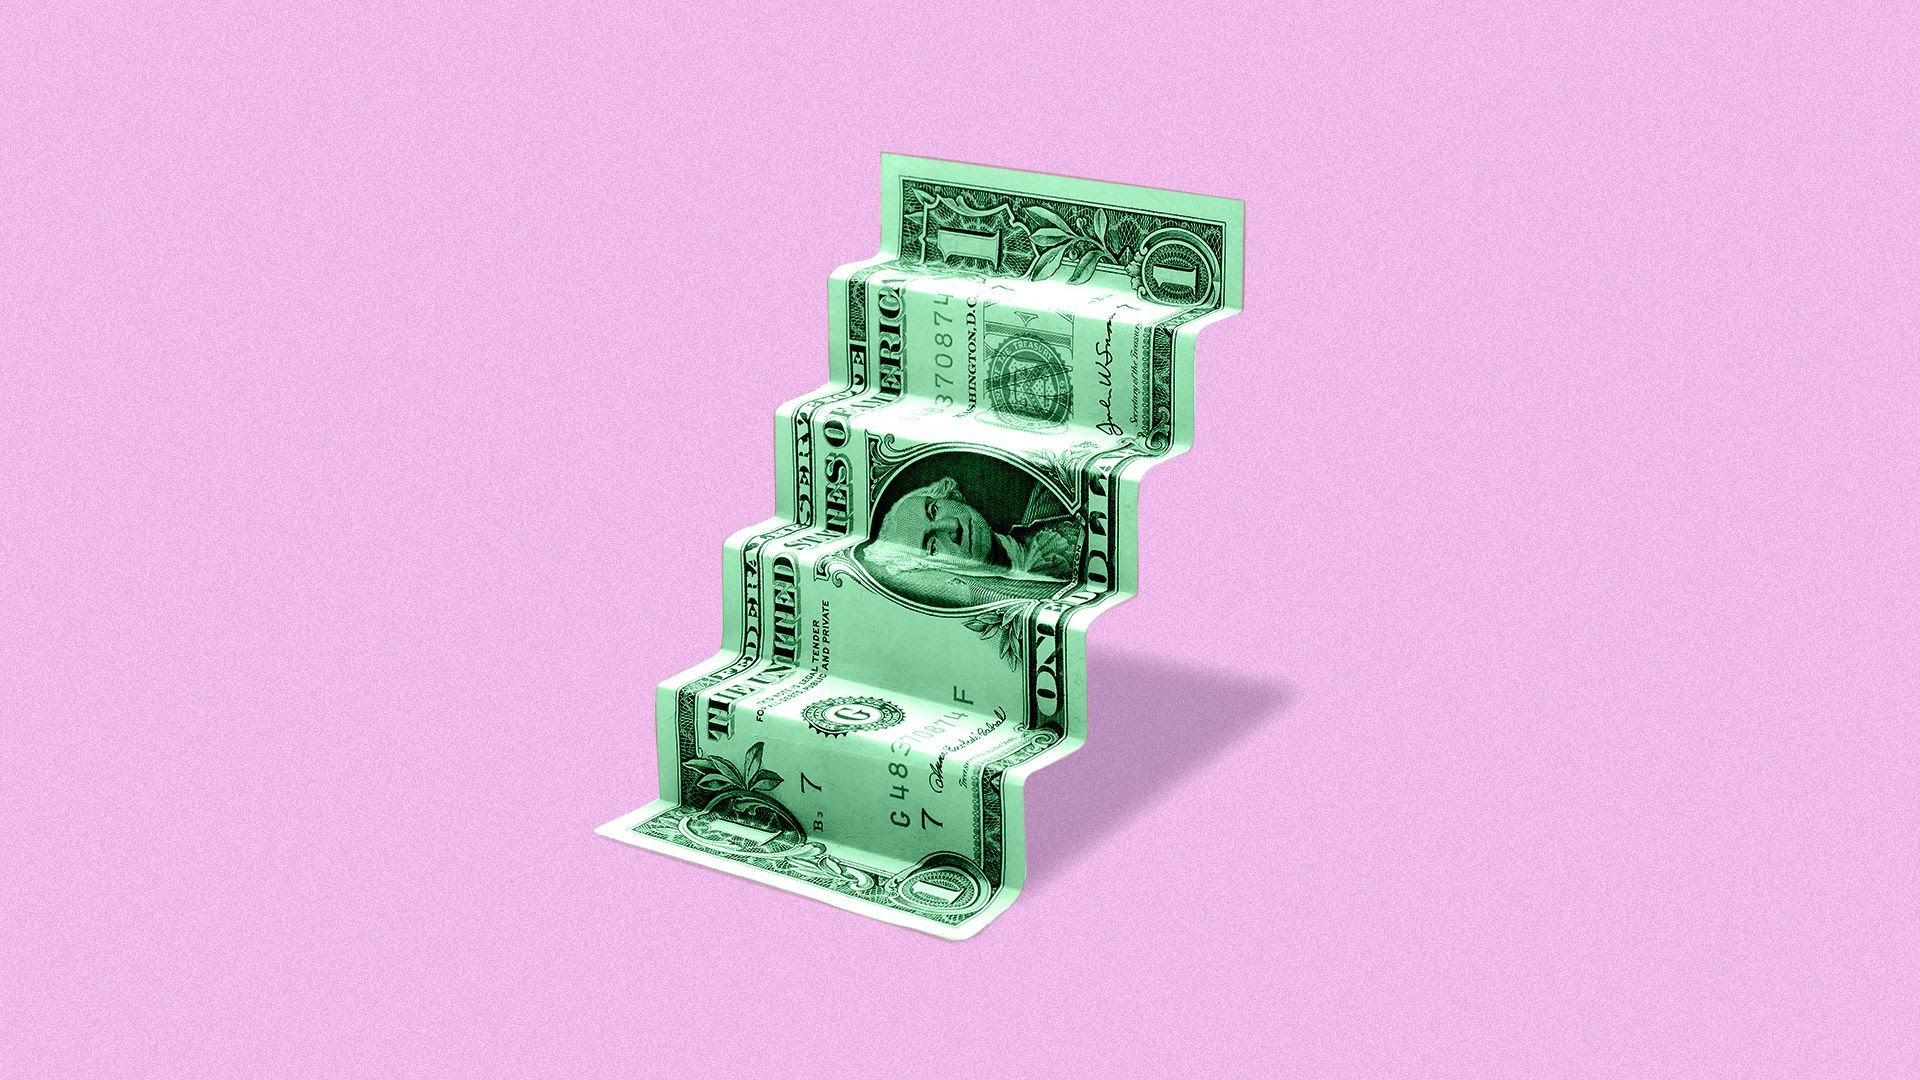 Venture capital industry wants more clarity on foreign investment rules